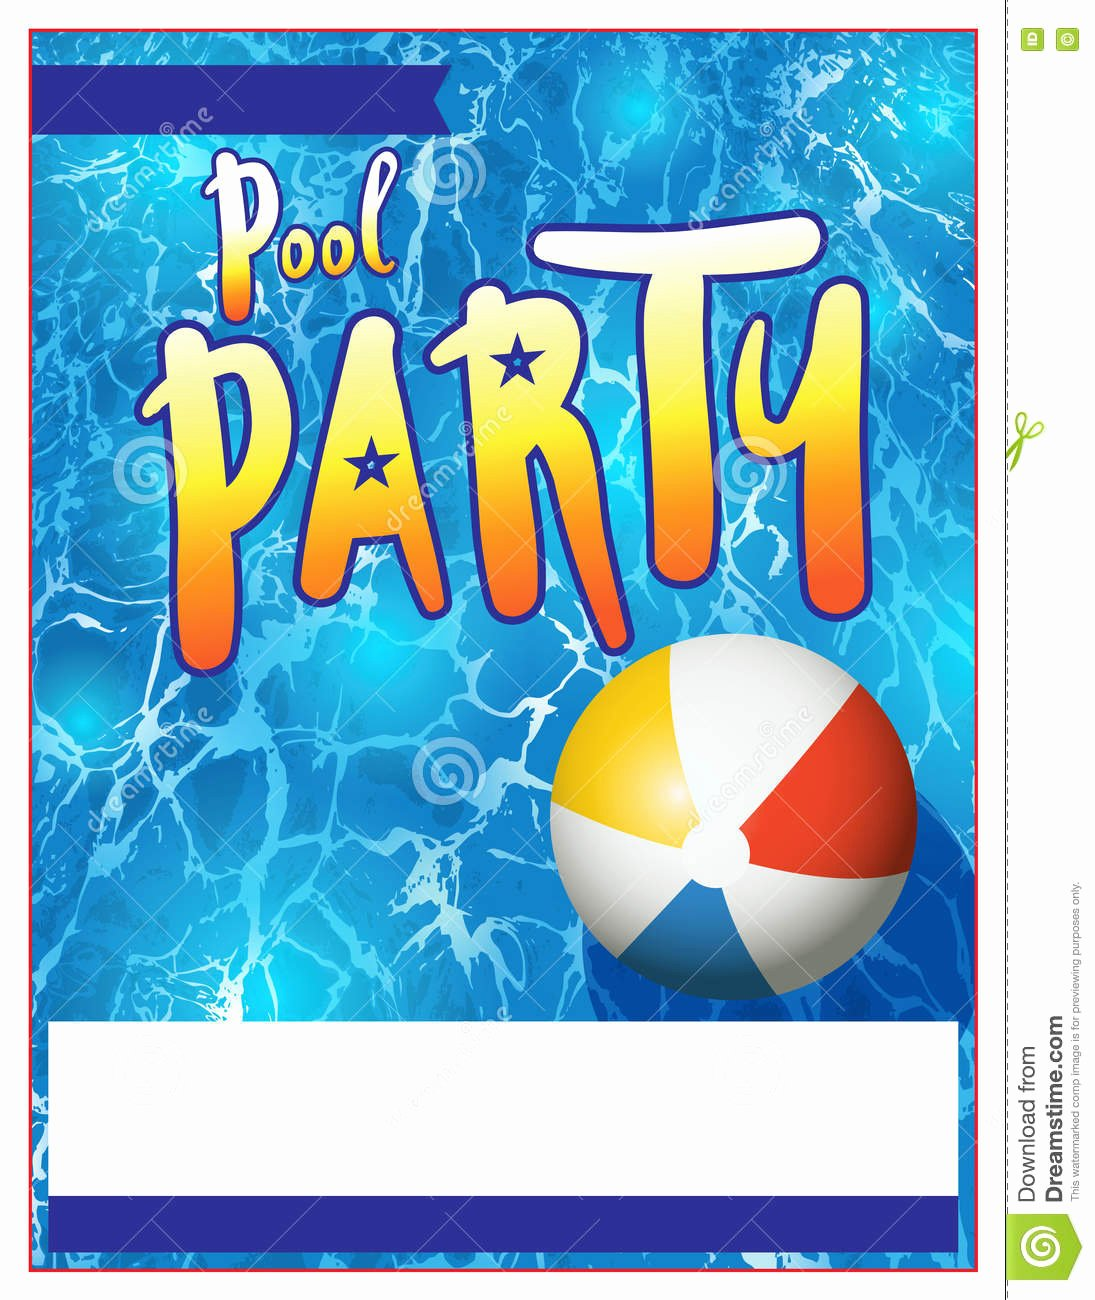 Pool Party Flyer Template Best Of Pool Party Flyer Invitation Illustration Stock Vector